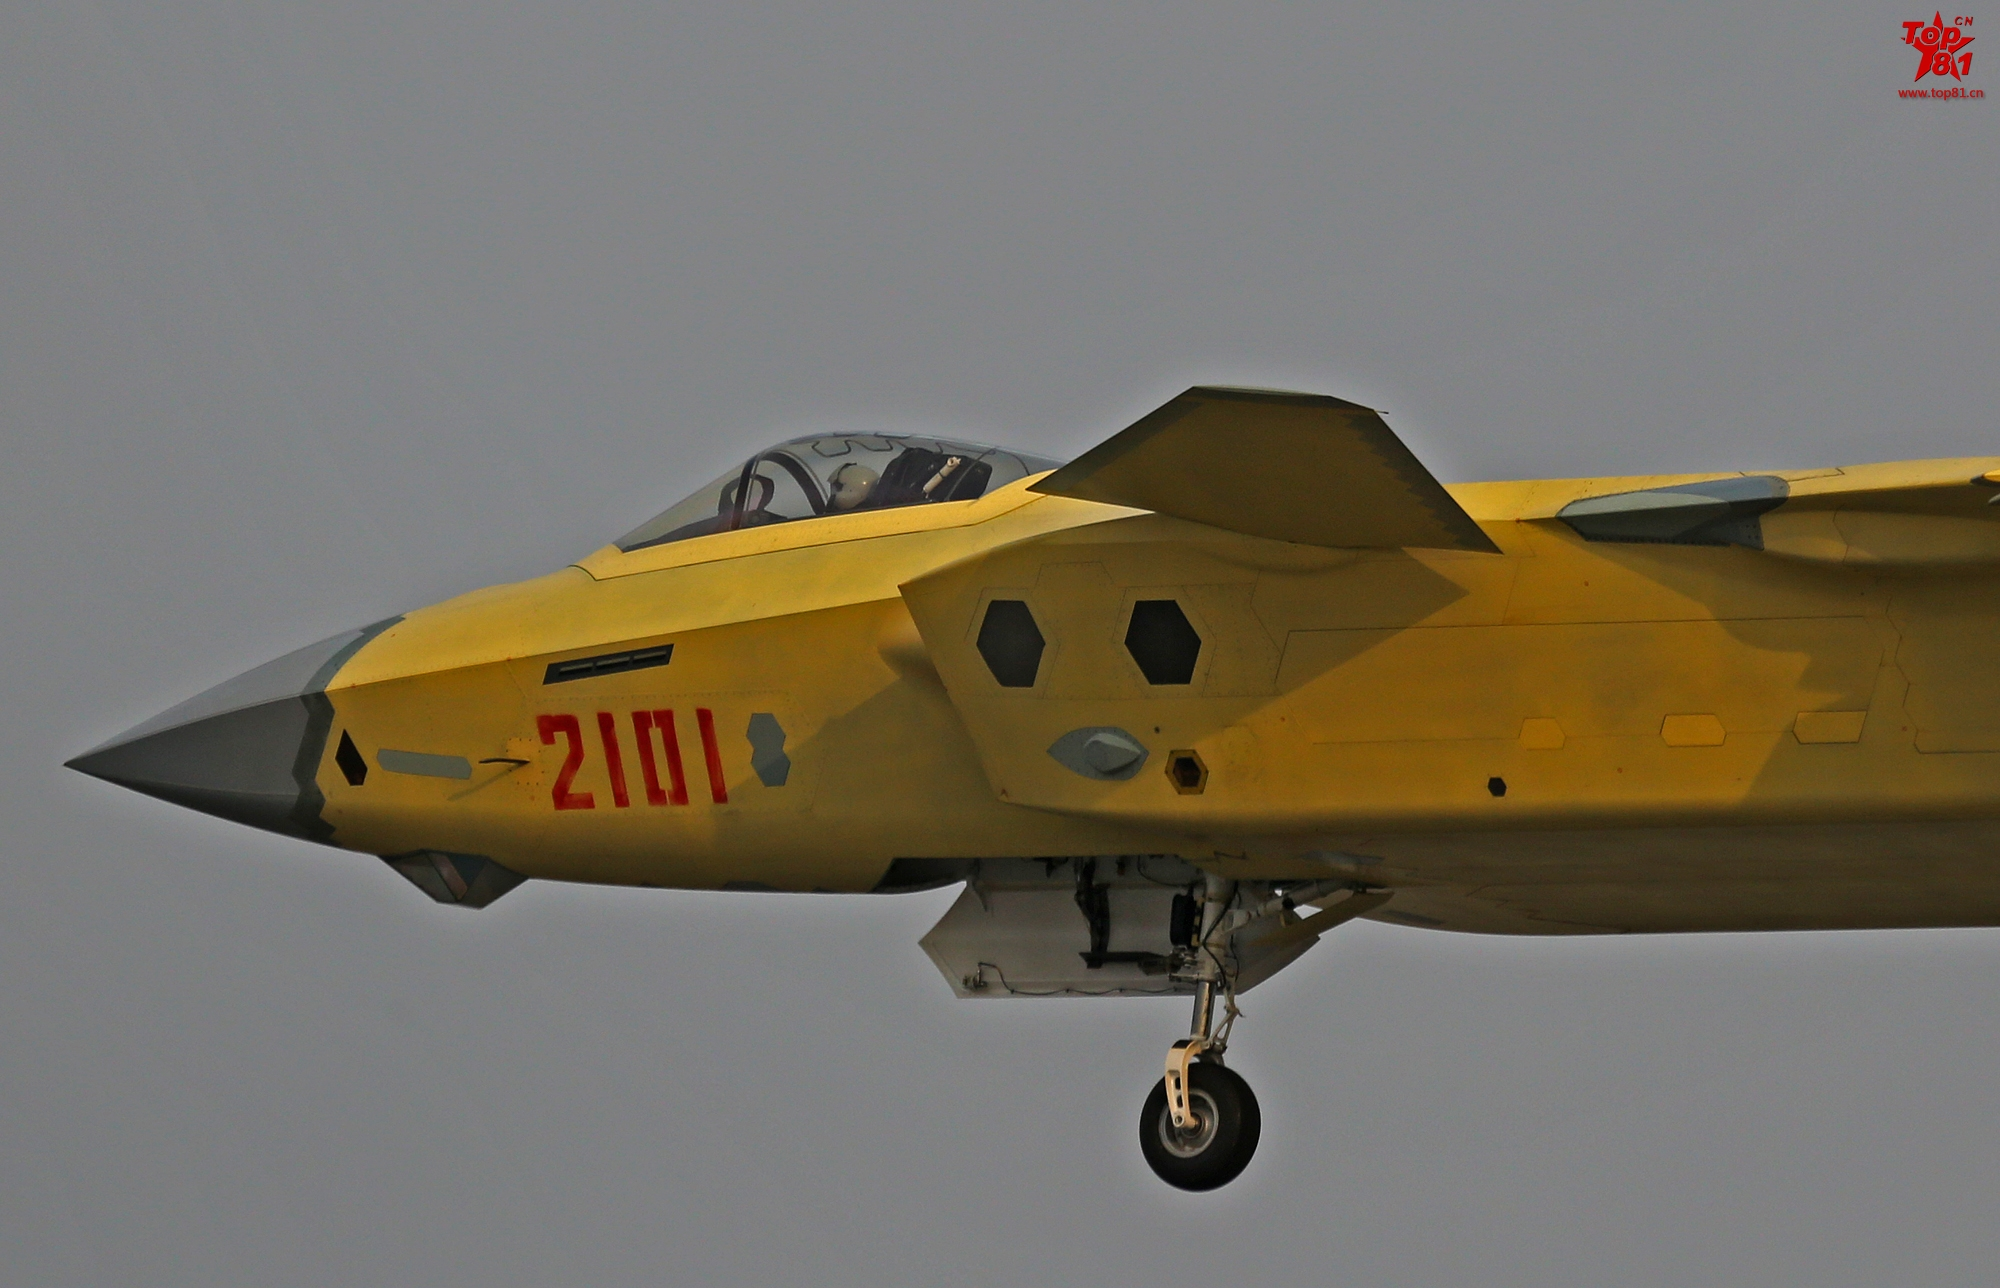 J-20 2101 - 8.2.16 front close-up.jpg